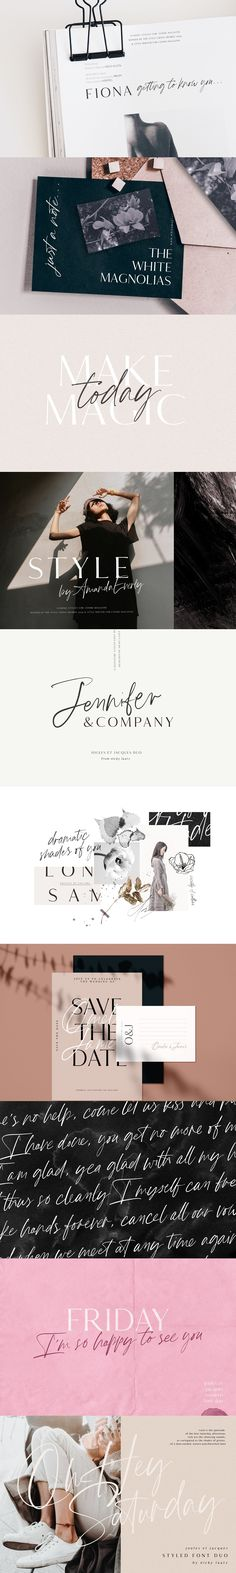 Joules et Jacques Font Duo Modern Fonts, Joules, Cool Fonts, Serif, Say Hello, Textured Background, Spice Things Up, Your Design, Card Templates